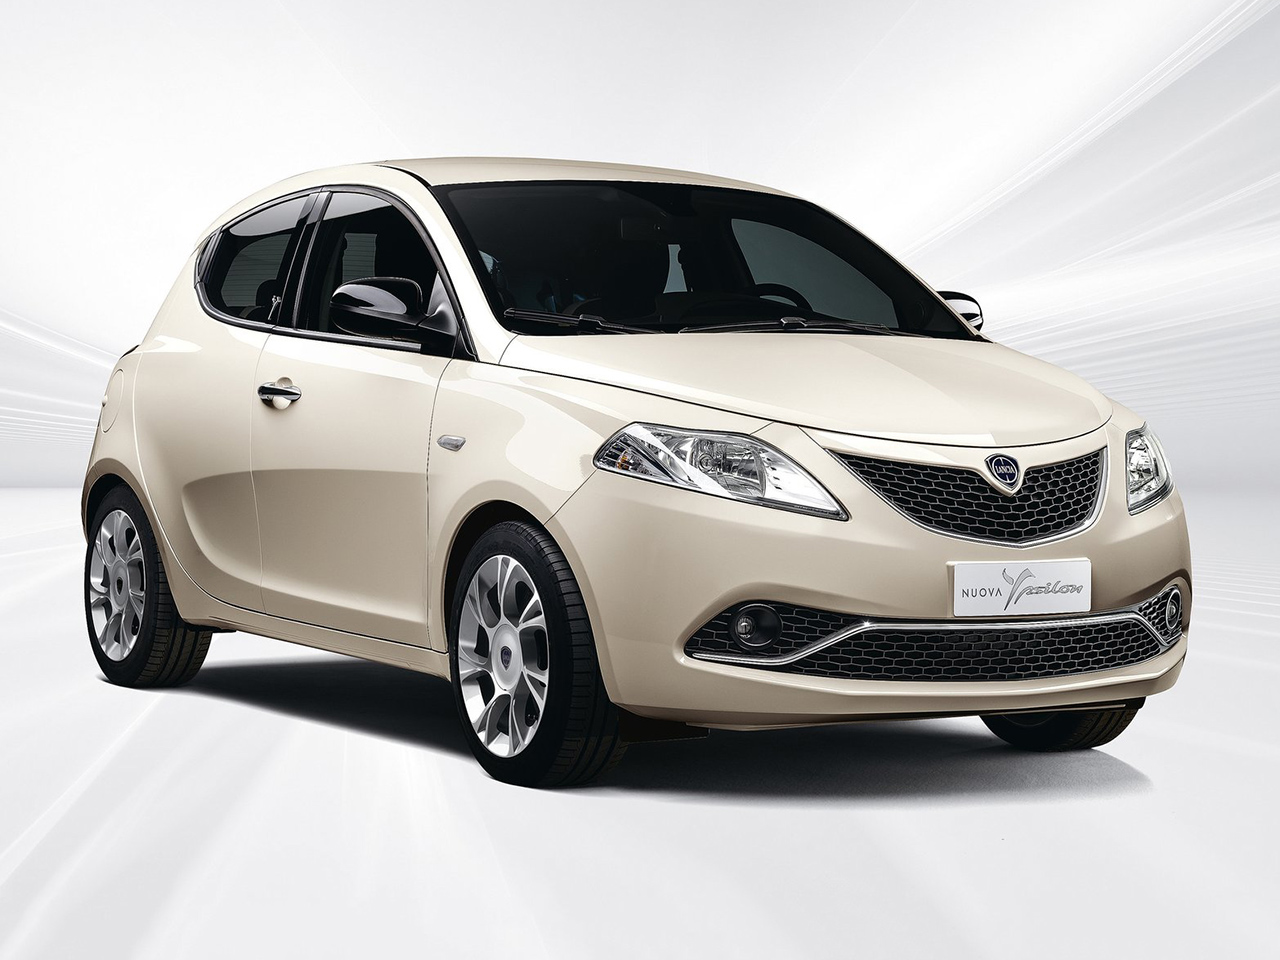 Lancia Ypsilon or similar